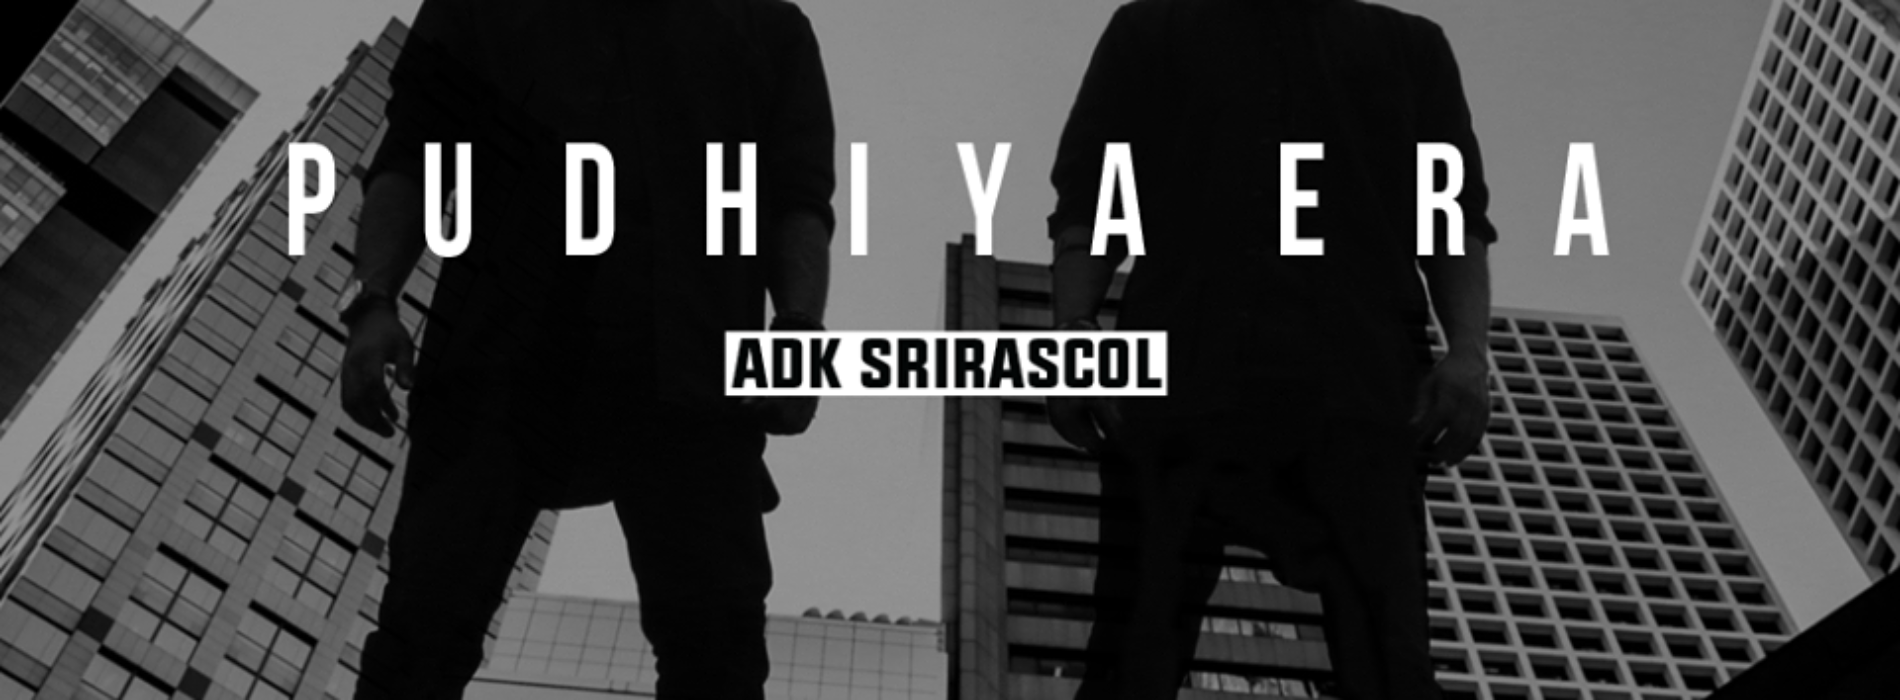 ADK SRIRASCOL – Pudhiya Era (Official Music Video)